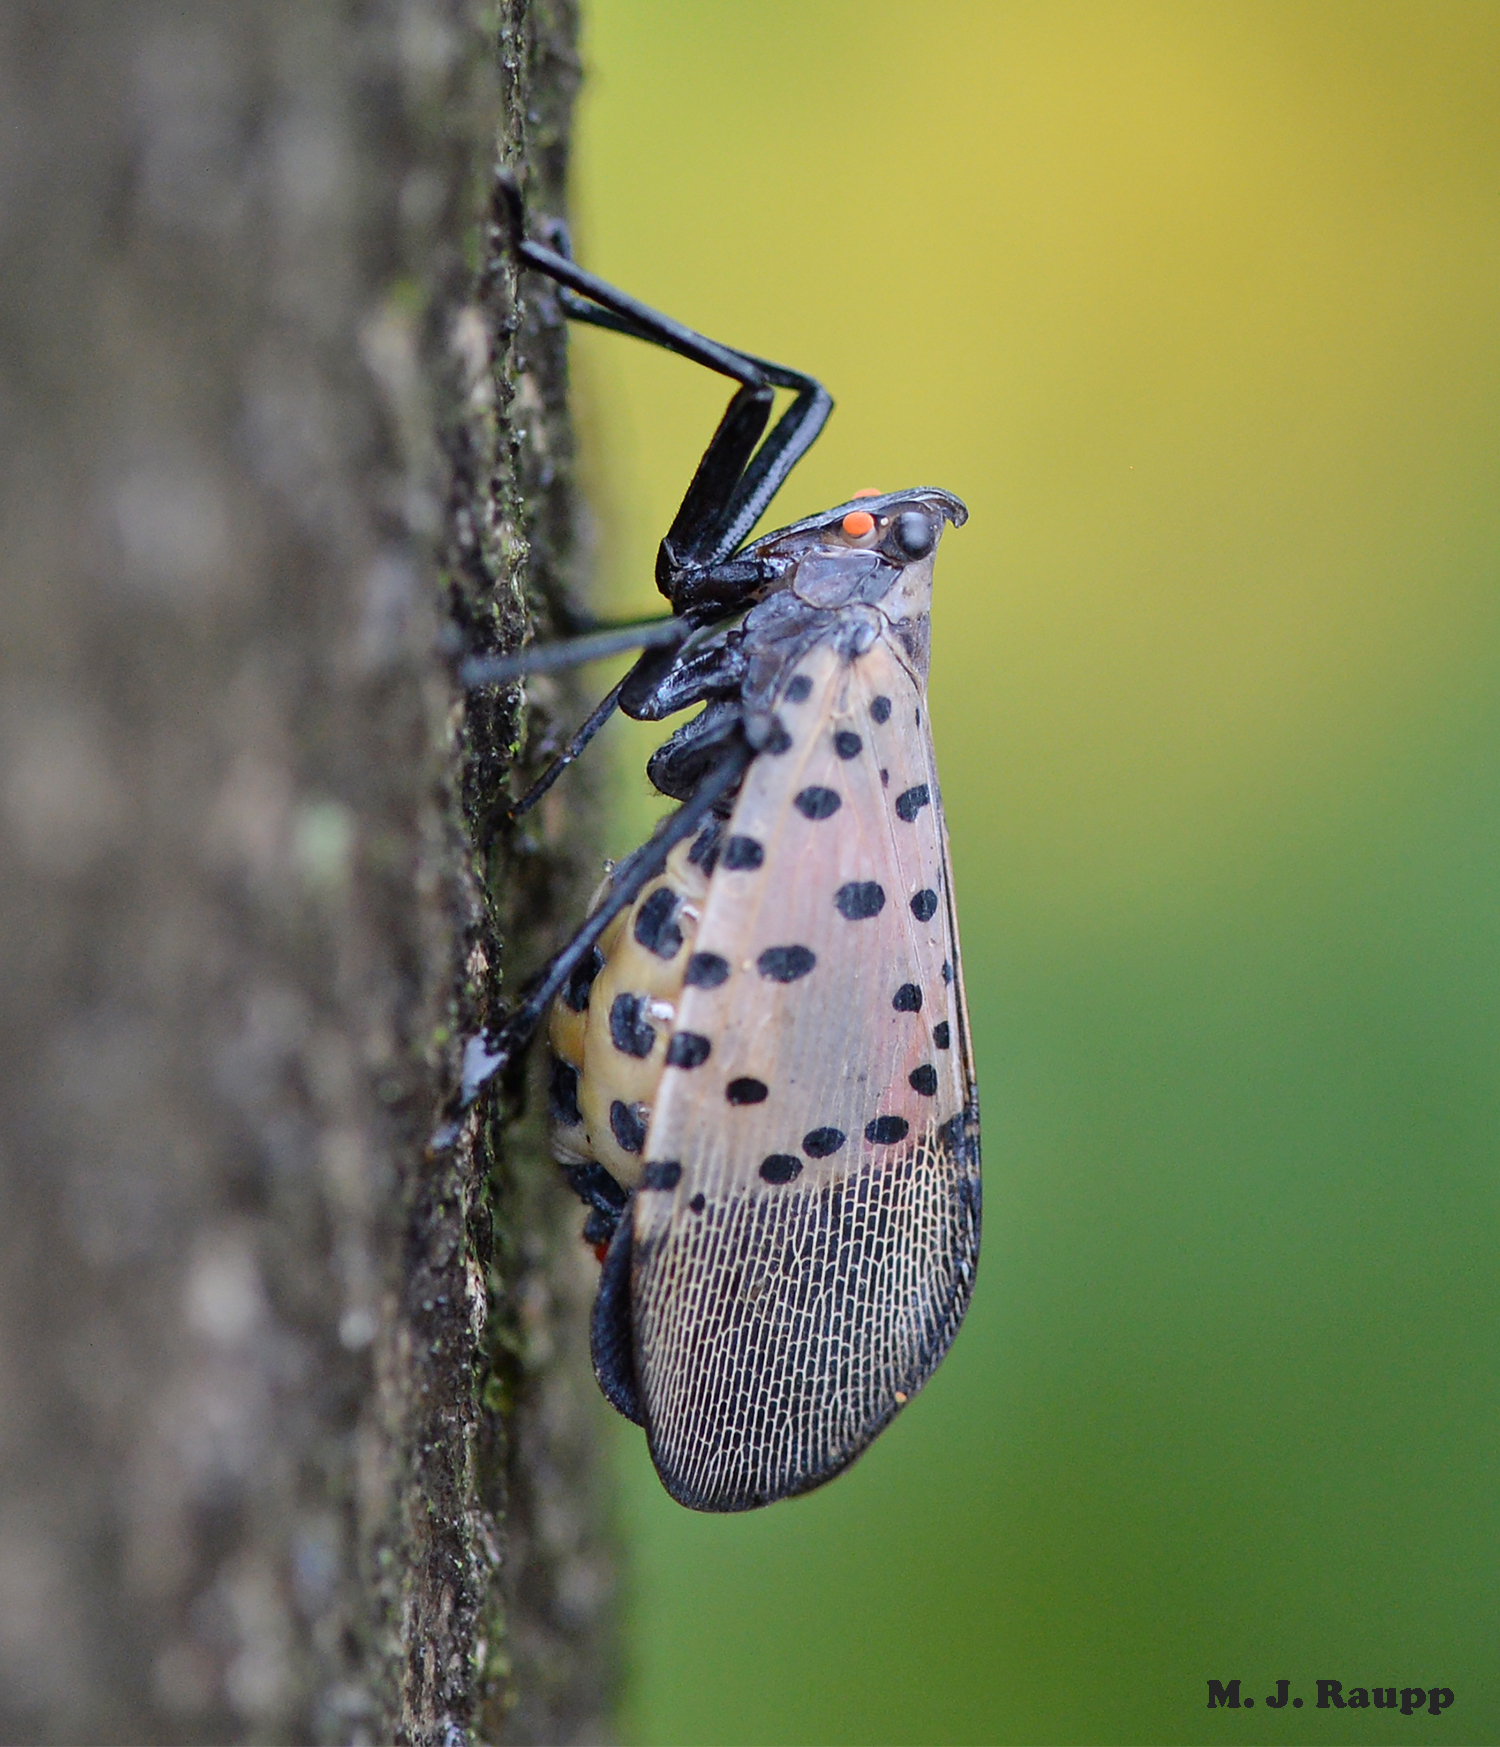 With an abdomen full of eggs this female lanternfly will soon deposit them in an egg mass on the tree.